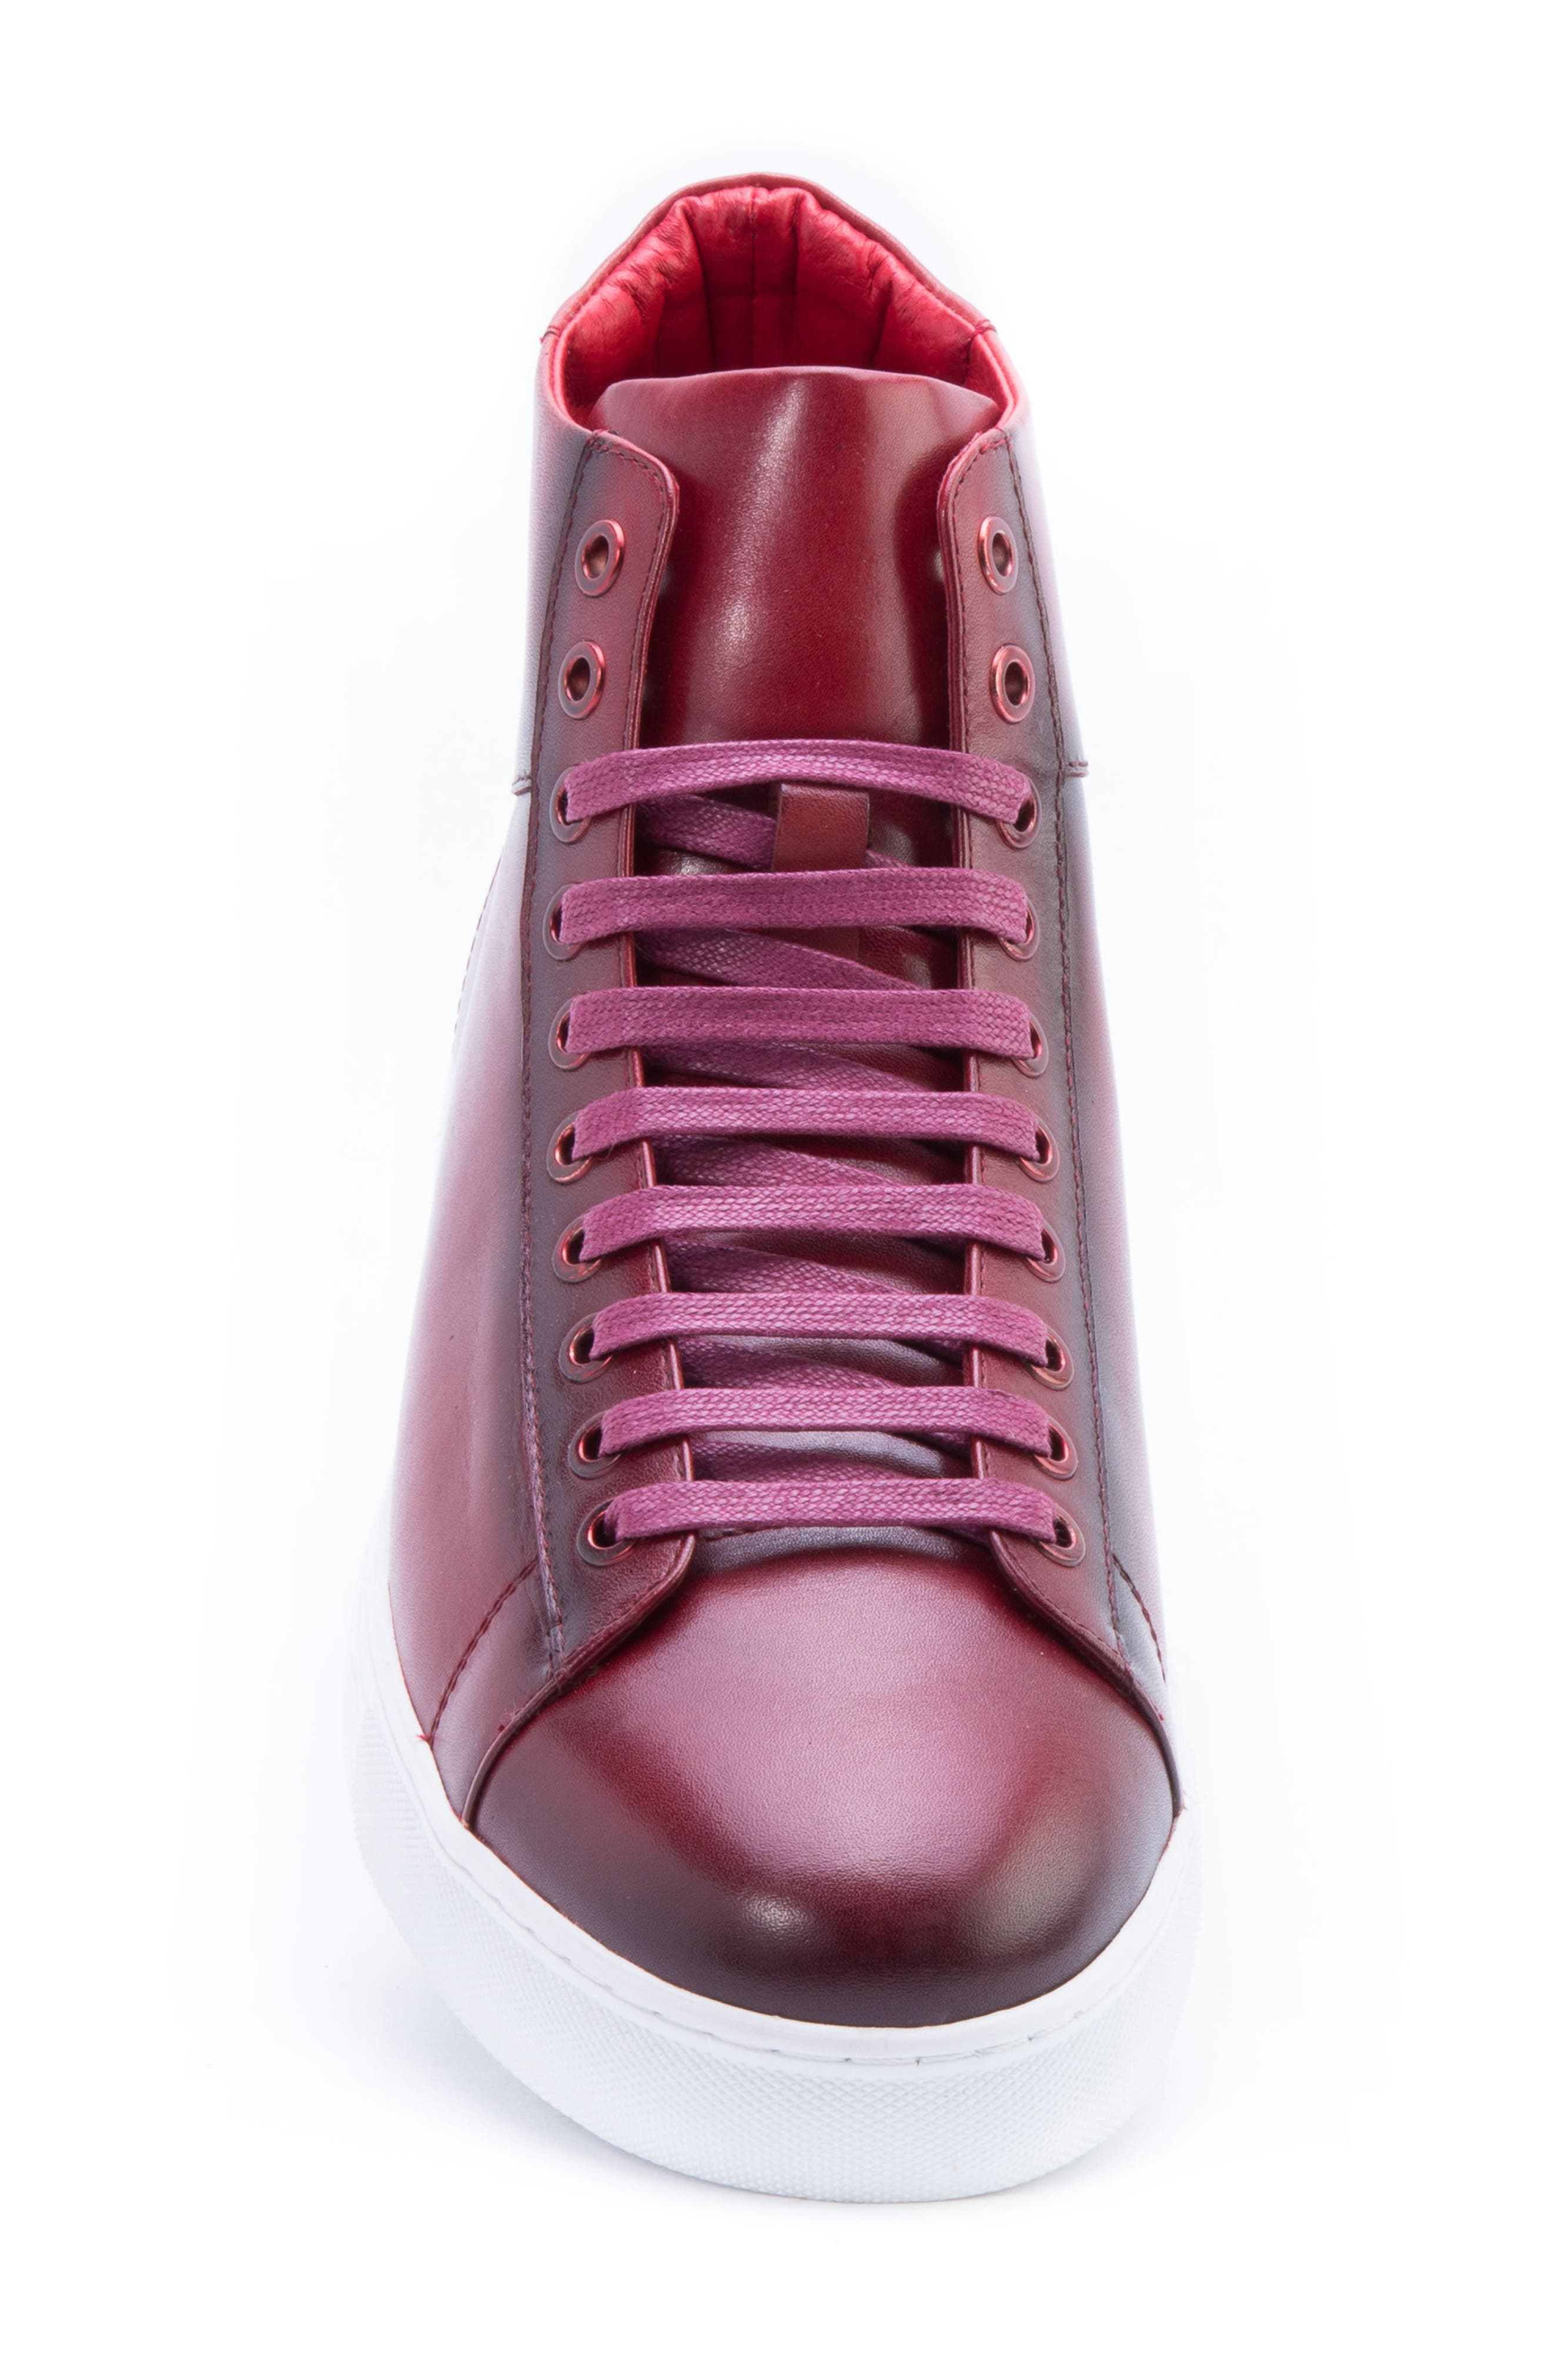 Spinback High Top Sneaker,                             Alternate thumbnail 4, color,                             RED LEATHER